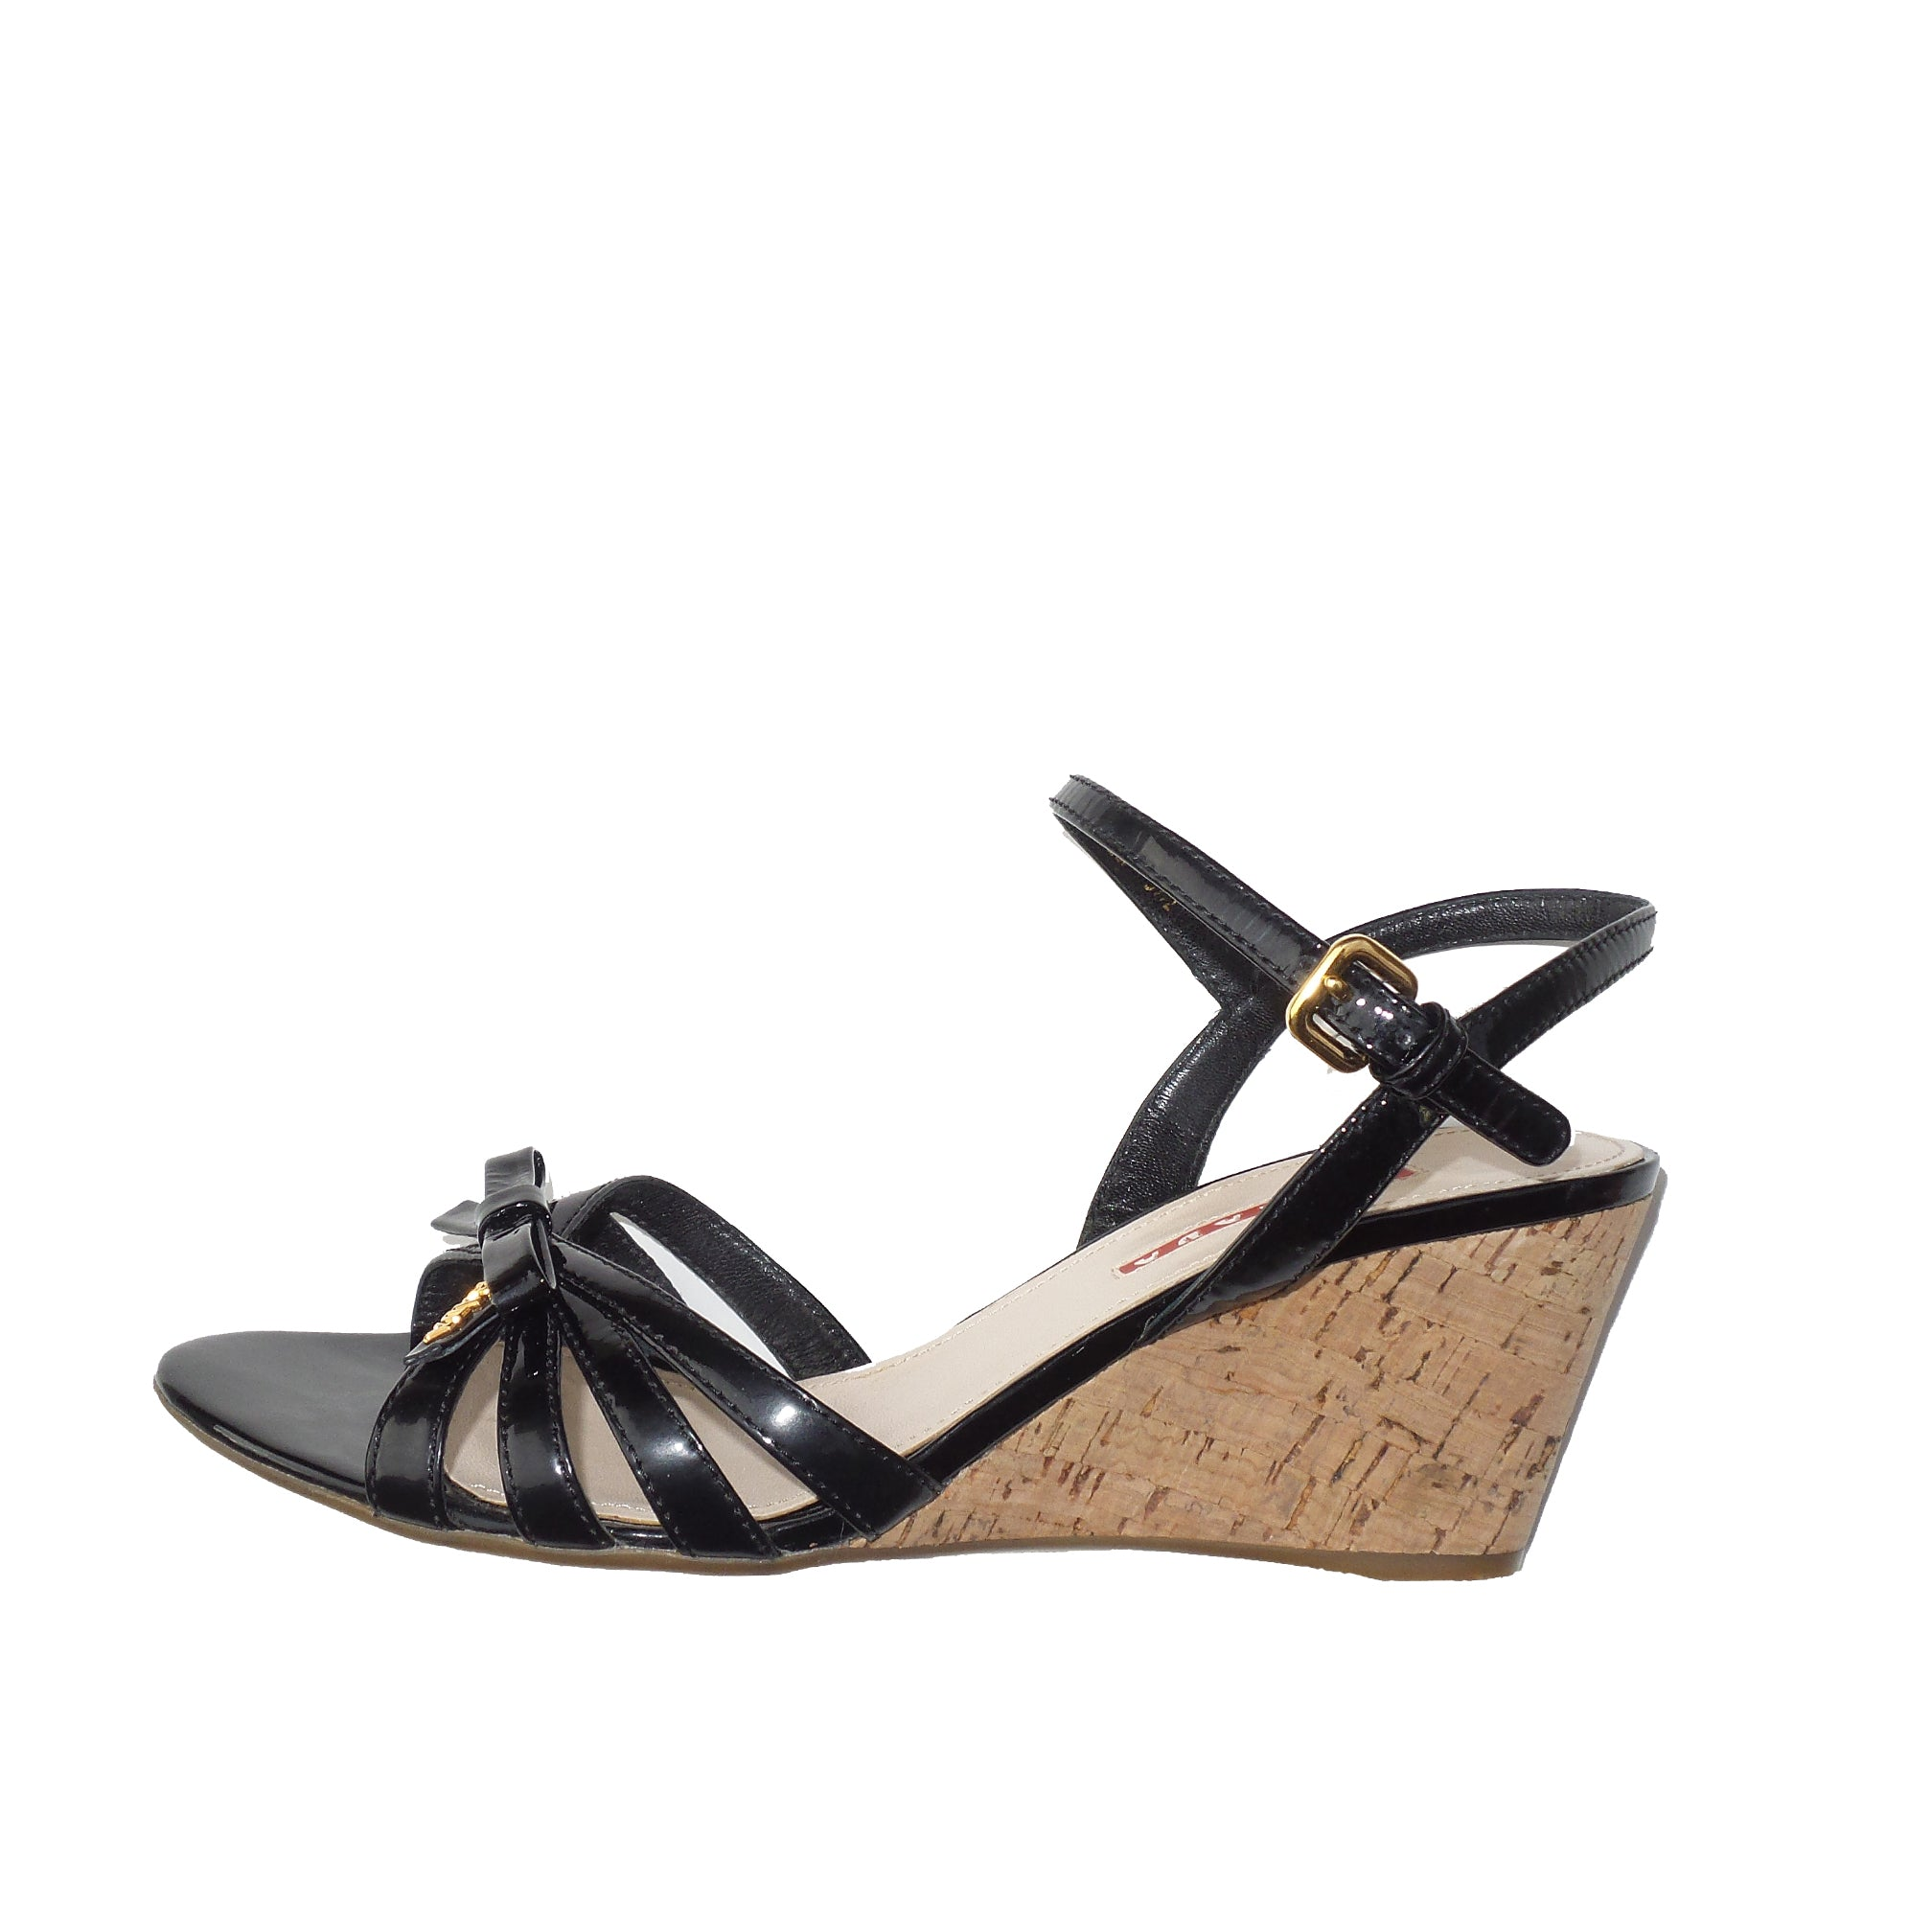 0cfe212546ab PRADA Sport Black Patent Leather Strappy Bow Cork Wedge Heel Sandals 3 –  Encore Resale.com